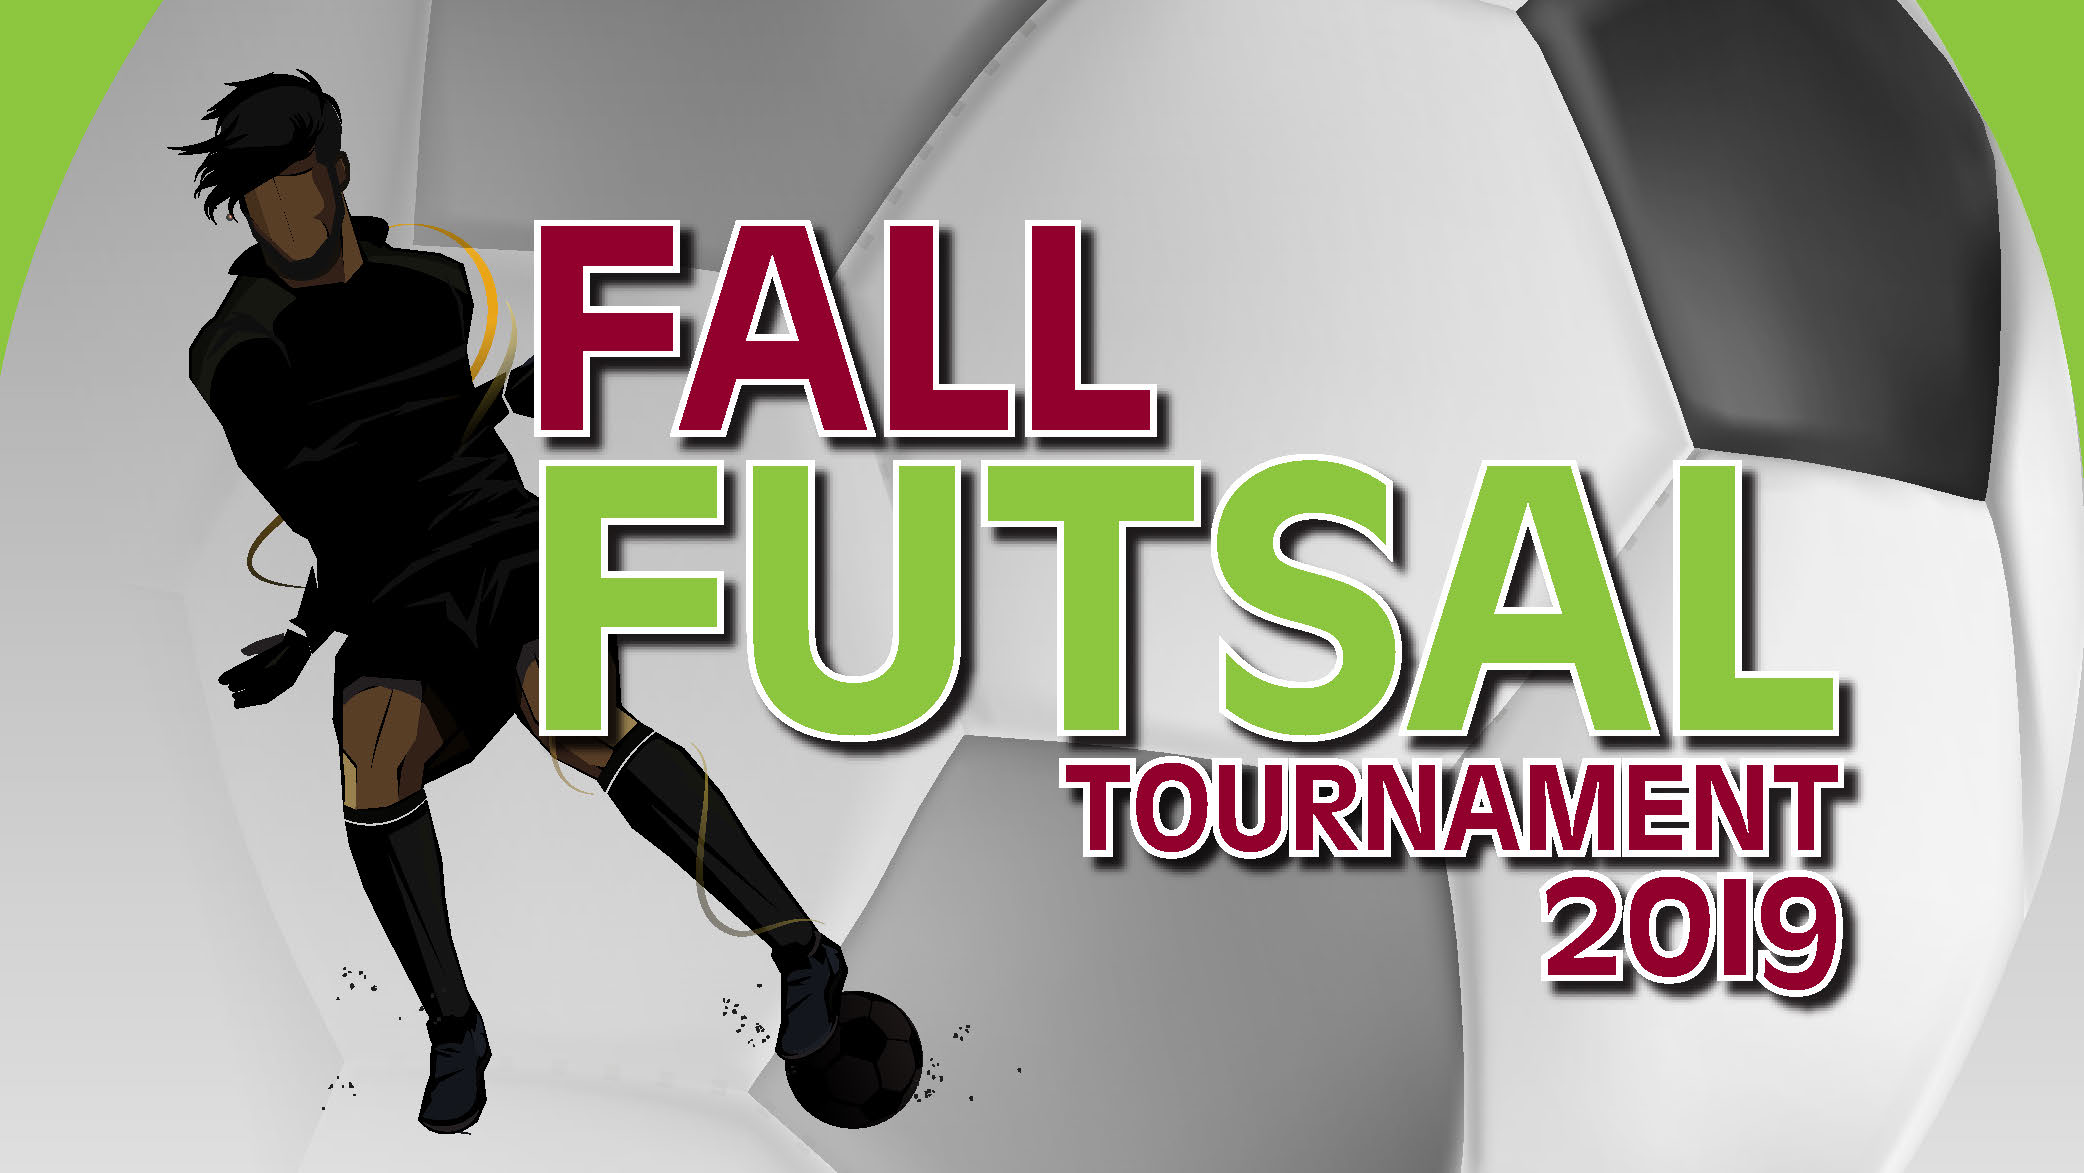 Fall Futsal Tournament 2019